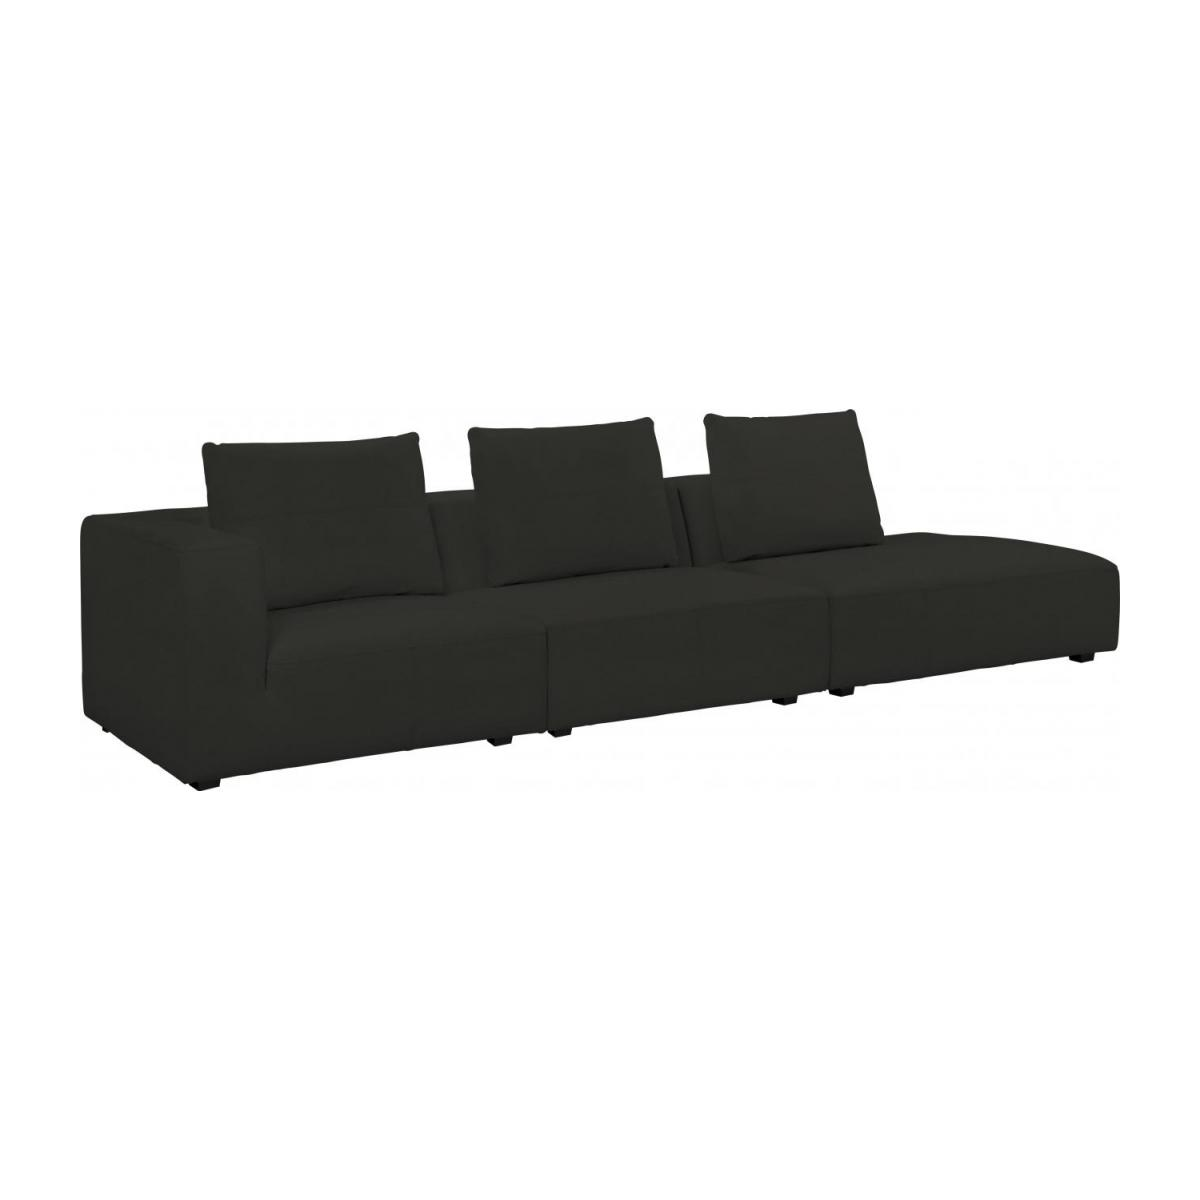 1,5 seater sofa with right armrest in Eton veined leather, brown n°9